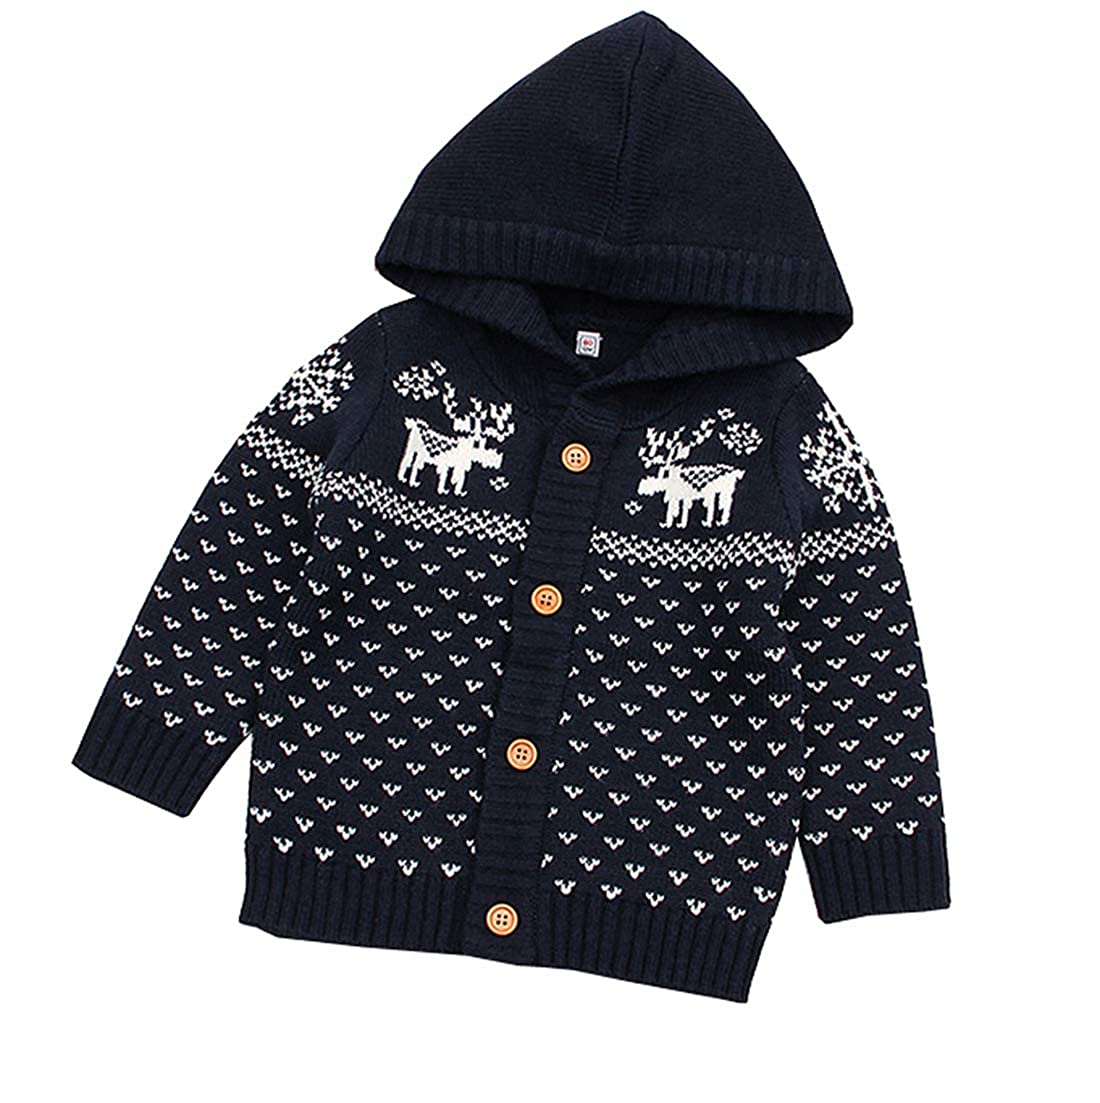 Fairy Baby Toddler Baby Christmas Outfit Knit Cotton Hood Jacket Outwear Sweater Coat